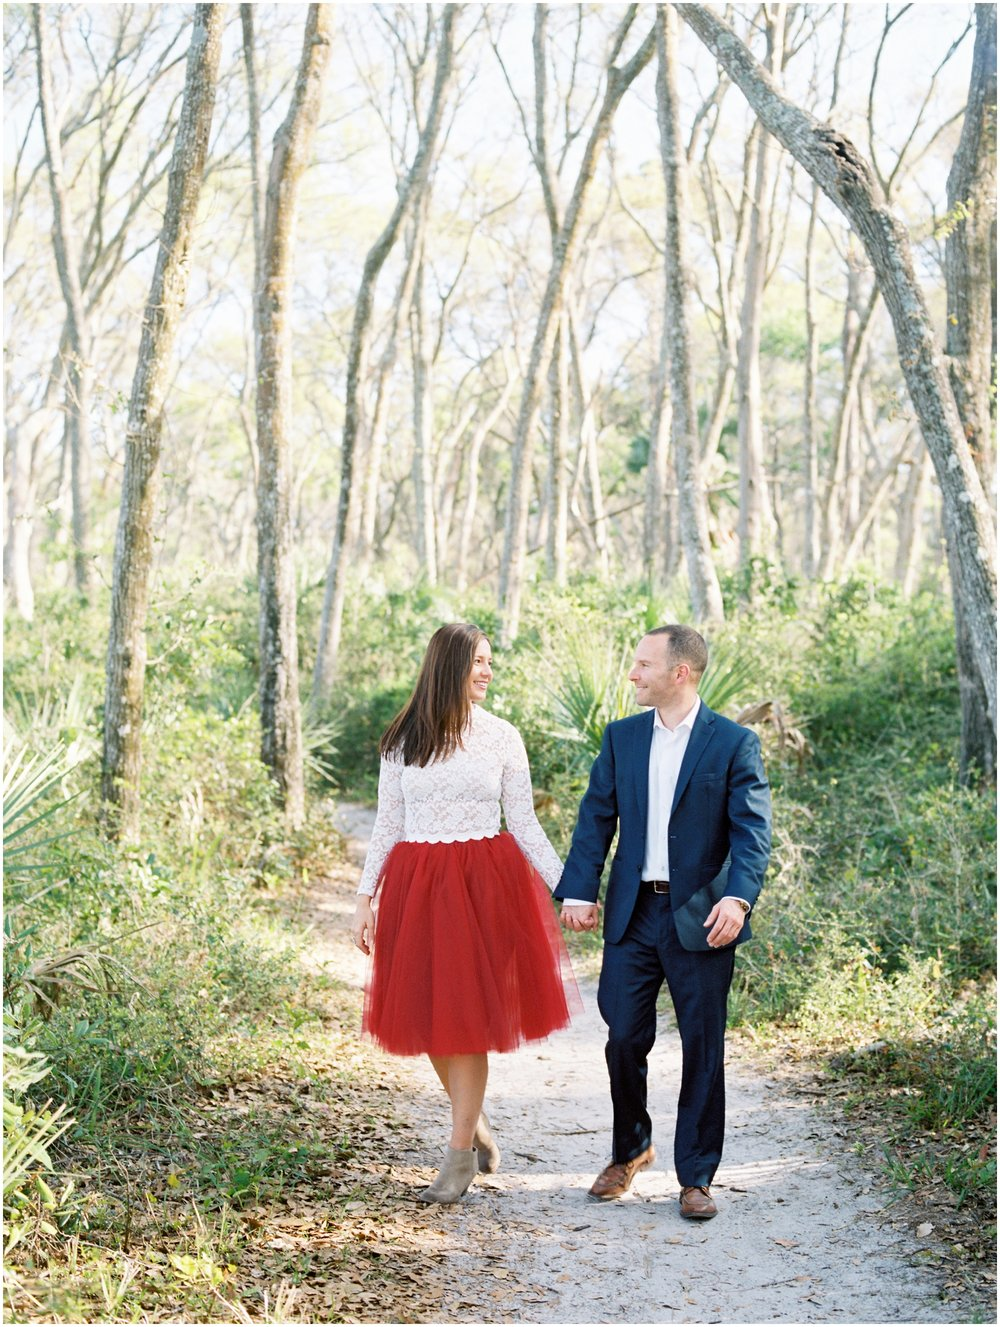 Lisa Silva Photography -Engagement Session at Big Talbot Island- Jacksonville and North East Florida Fine Art Film Photographer_0010.jpg